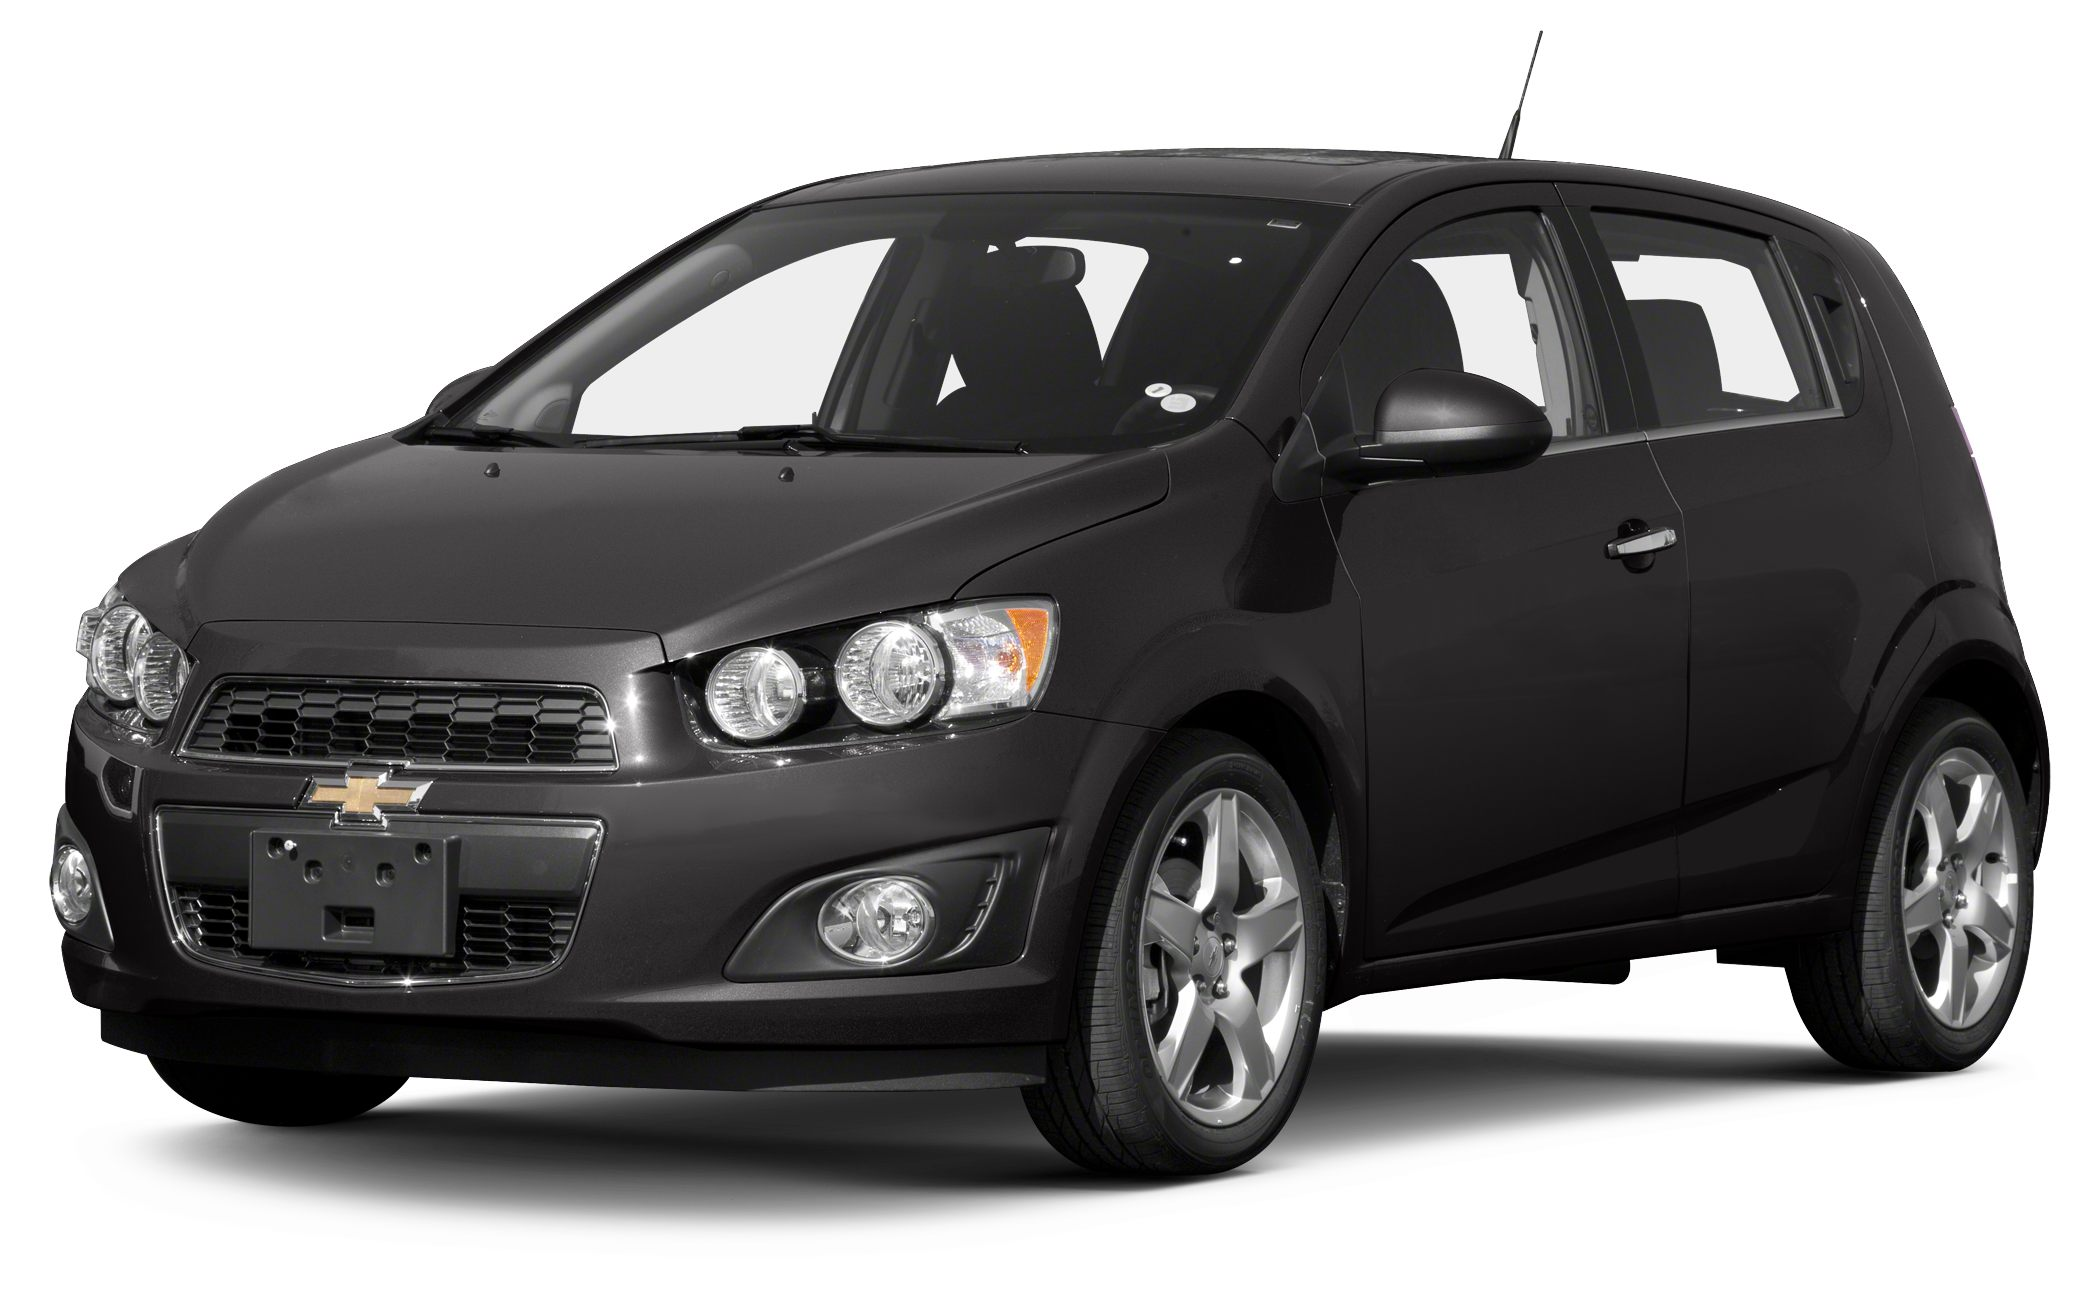 2013 Chevrolet Sonic LT LT trim Excellent Condition LOW MILES - 13994 EPA 40 MPG Hwy29 MPG Ci